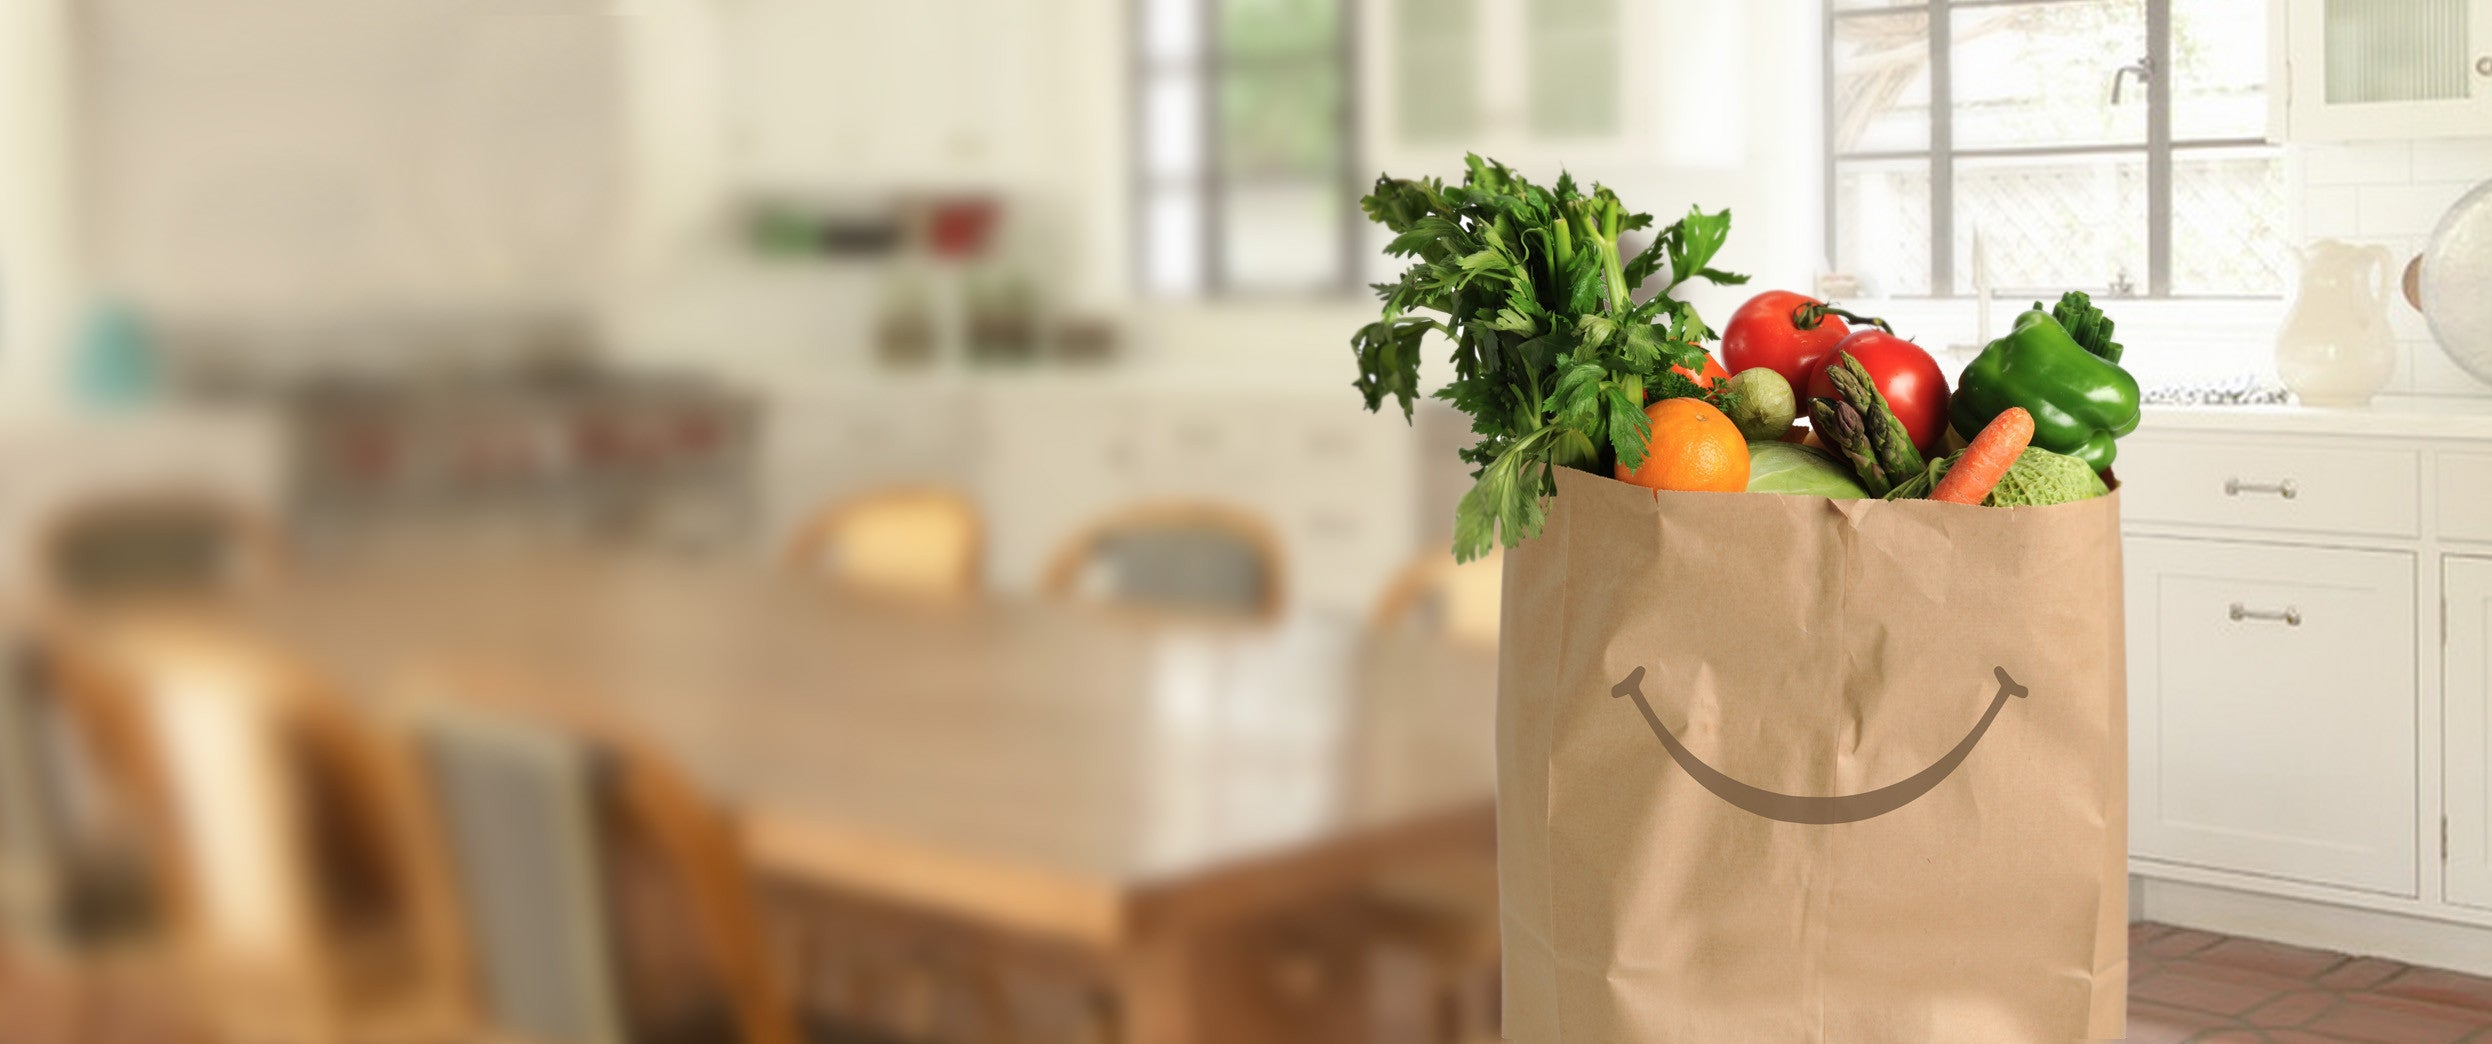 Montreal S Online Grocery And Same Day Delivery Service